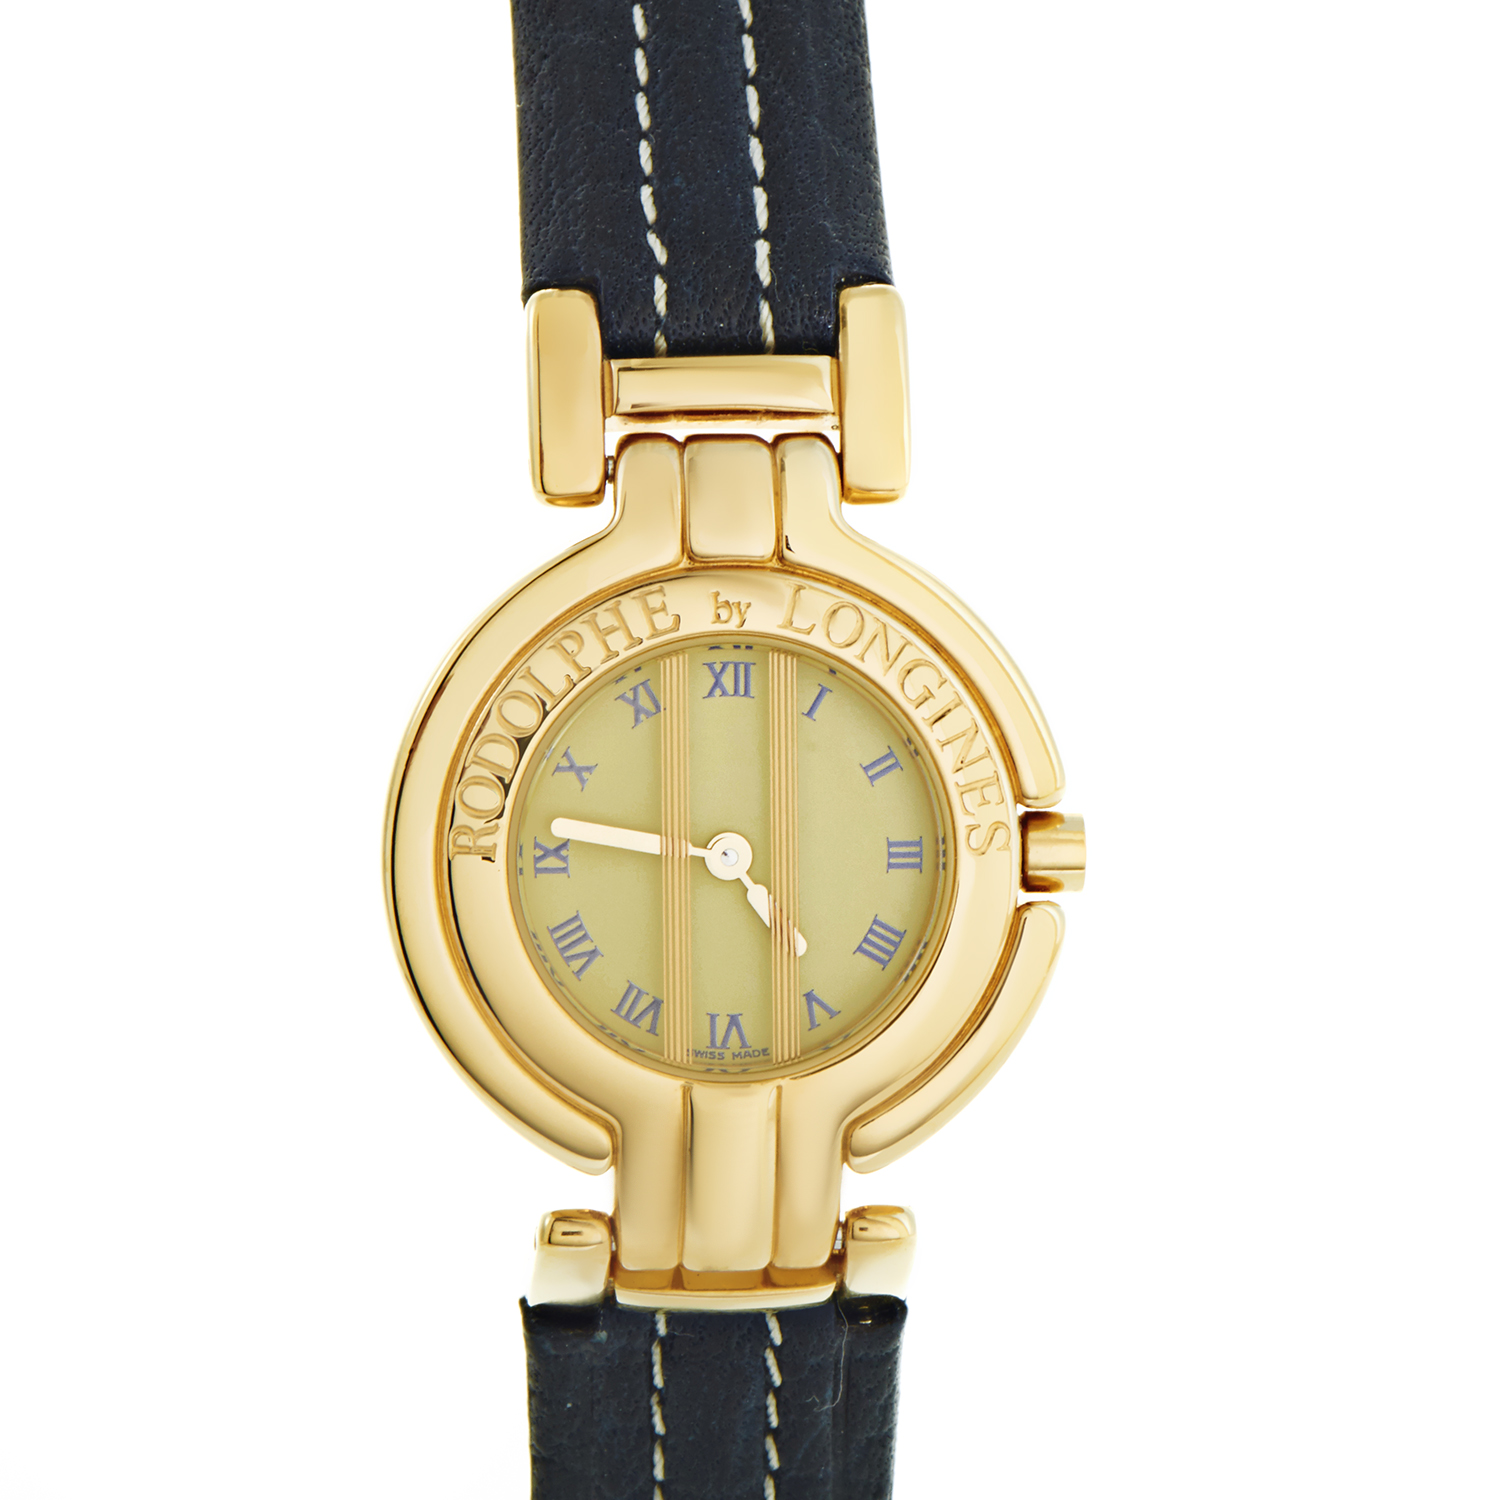 Rodolphe Women's Gold Plated Stainless Steel Quartz Watch L4.292.8.92.1